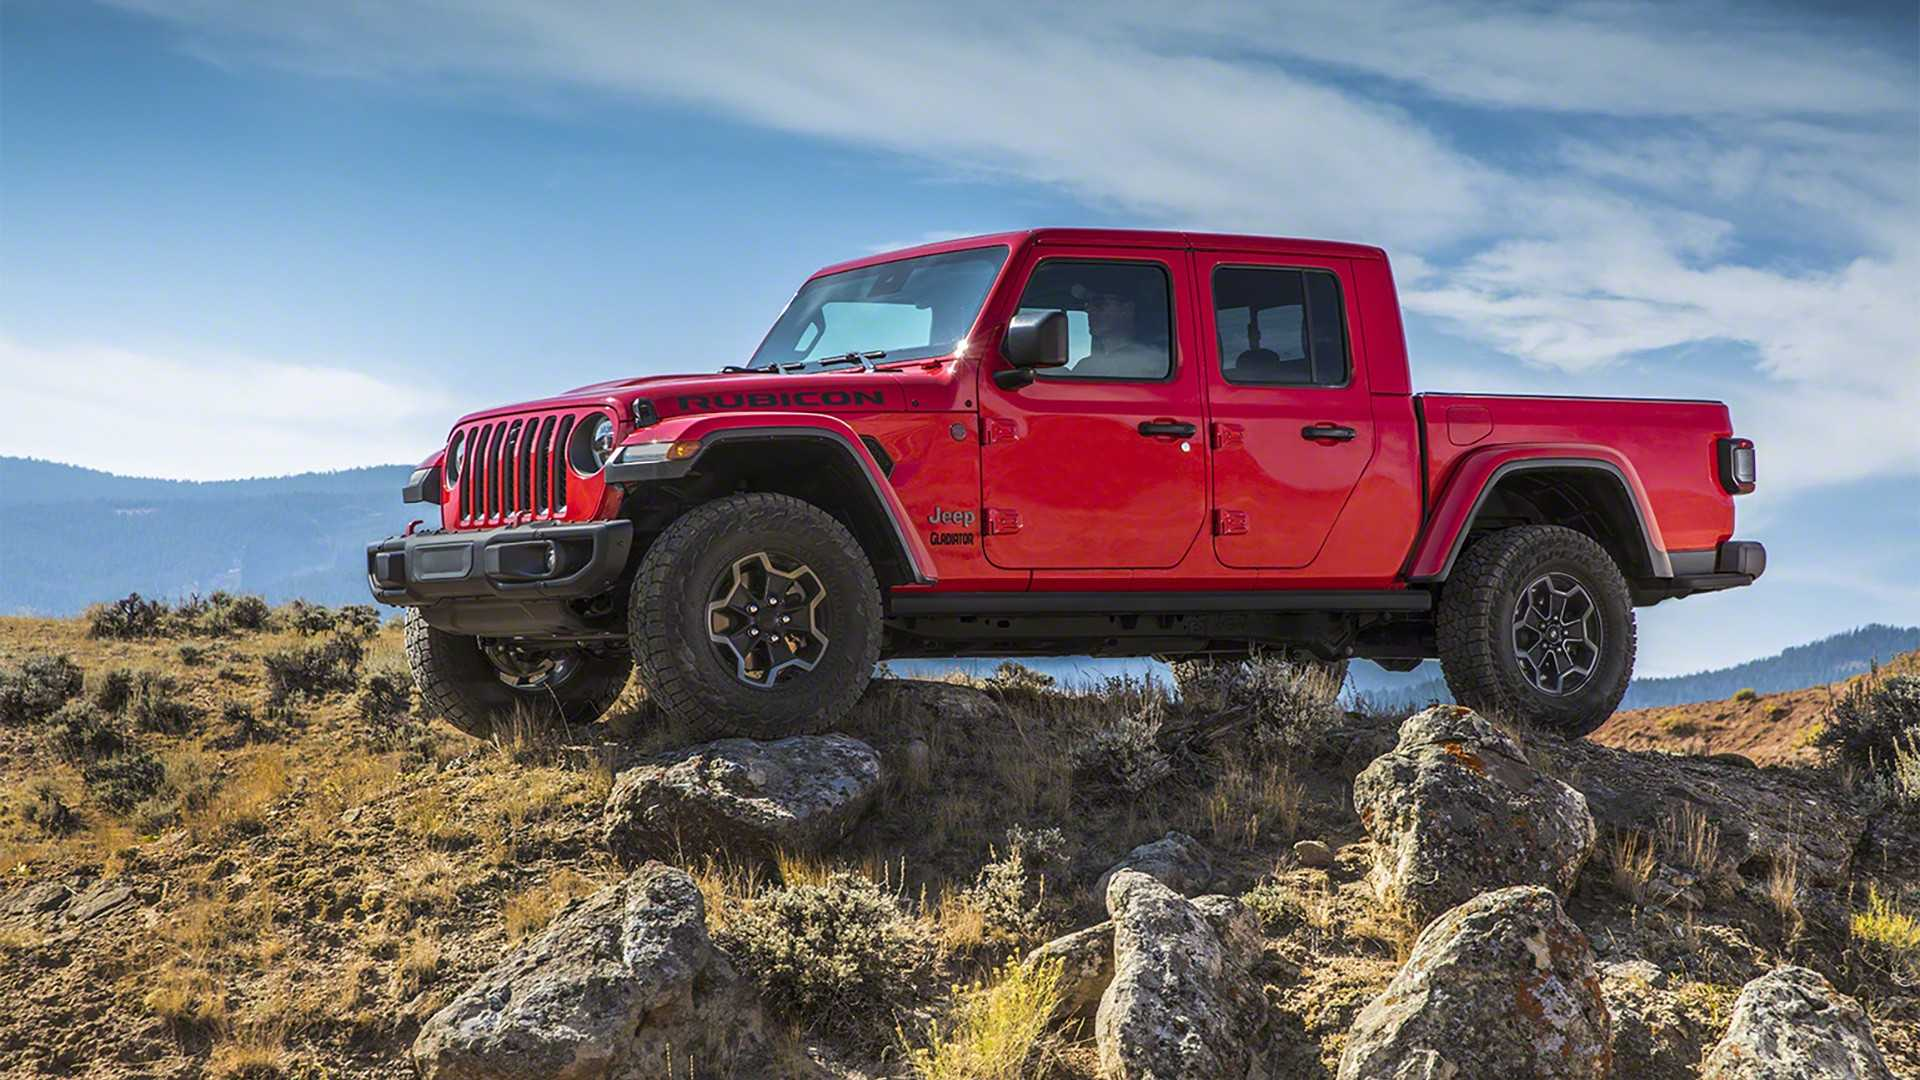 55 The Best 2020 Jeep Gladiator Price And Release Date